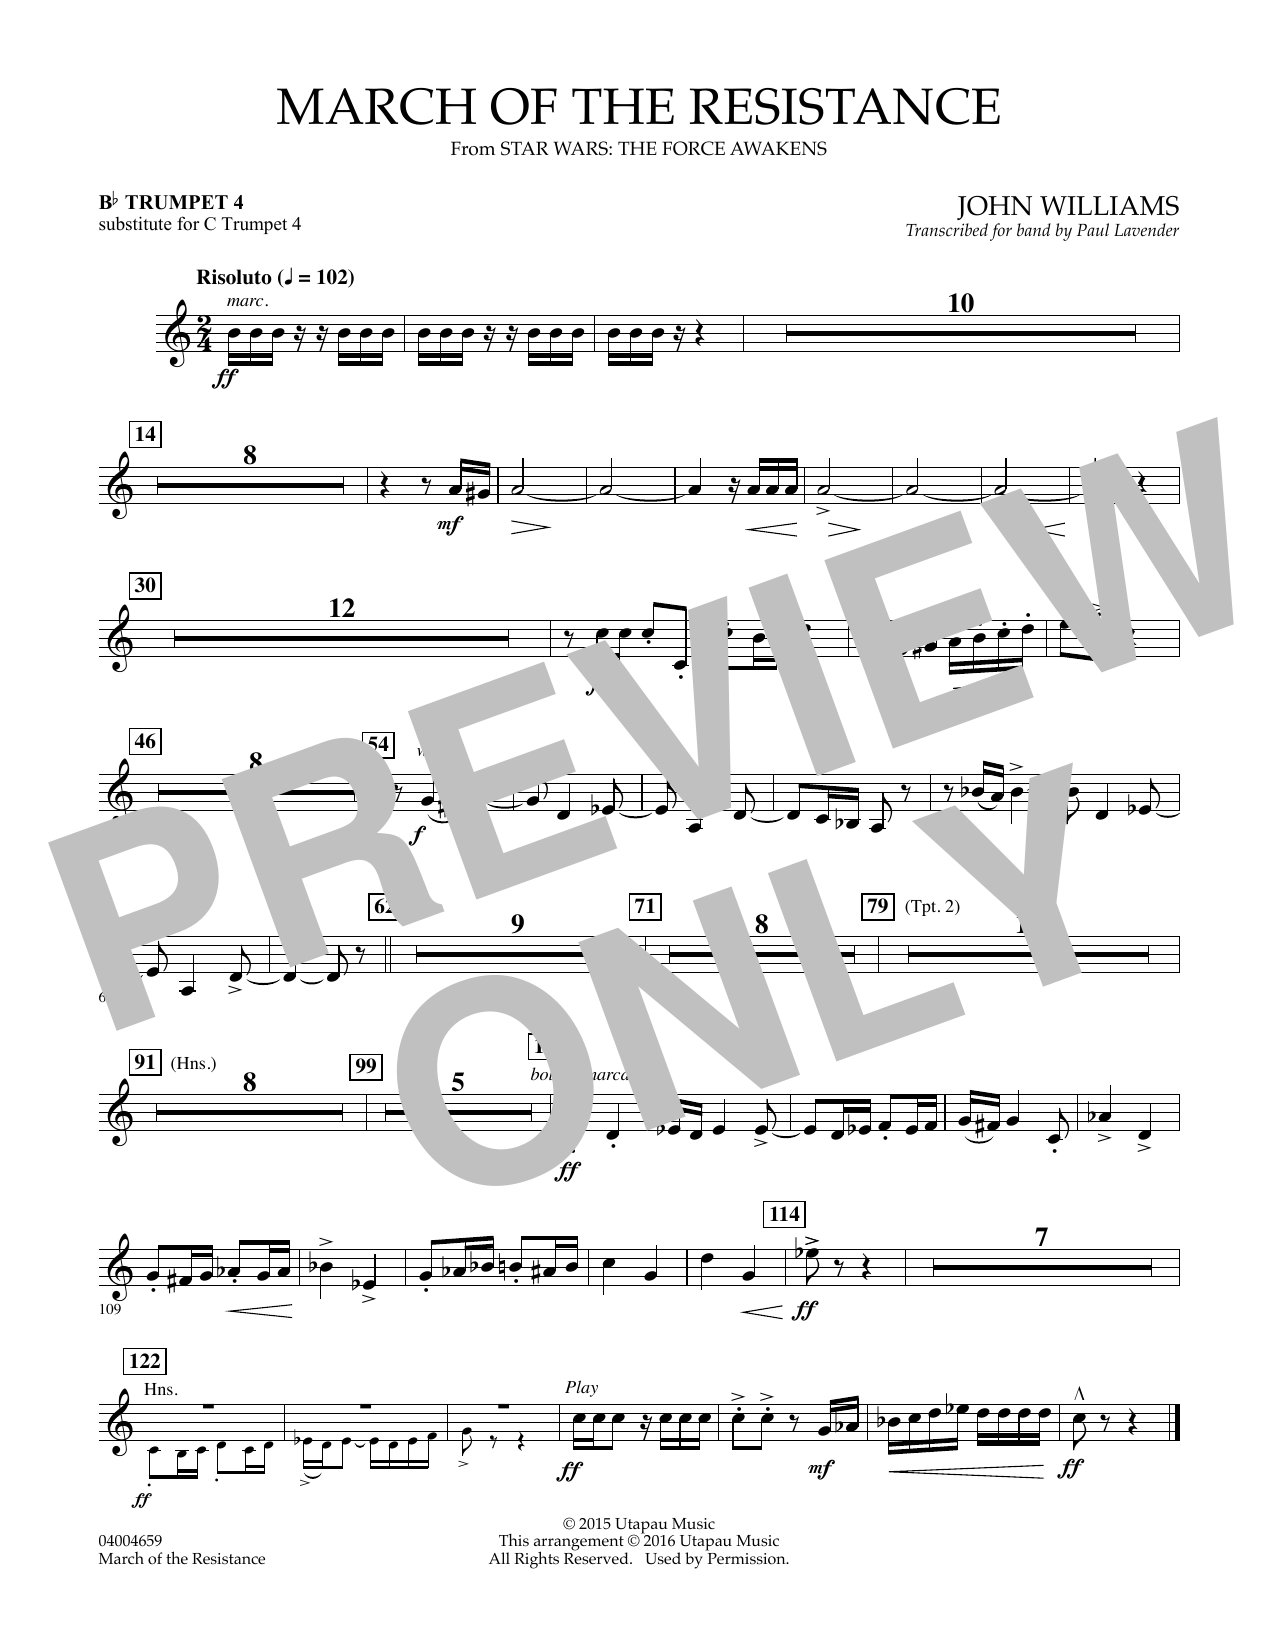 March of the Resistance - Bb Trumpet 1 (sub. C Tpt. 1 - - Bb Trumpet 4 (sub. C Tpt. 4) (Concert Band)